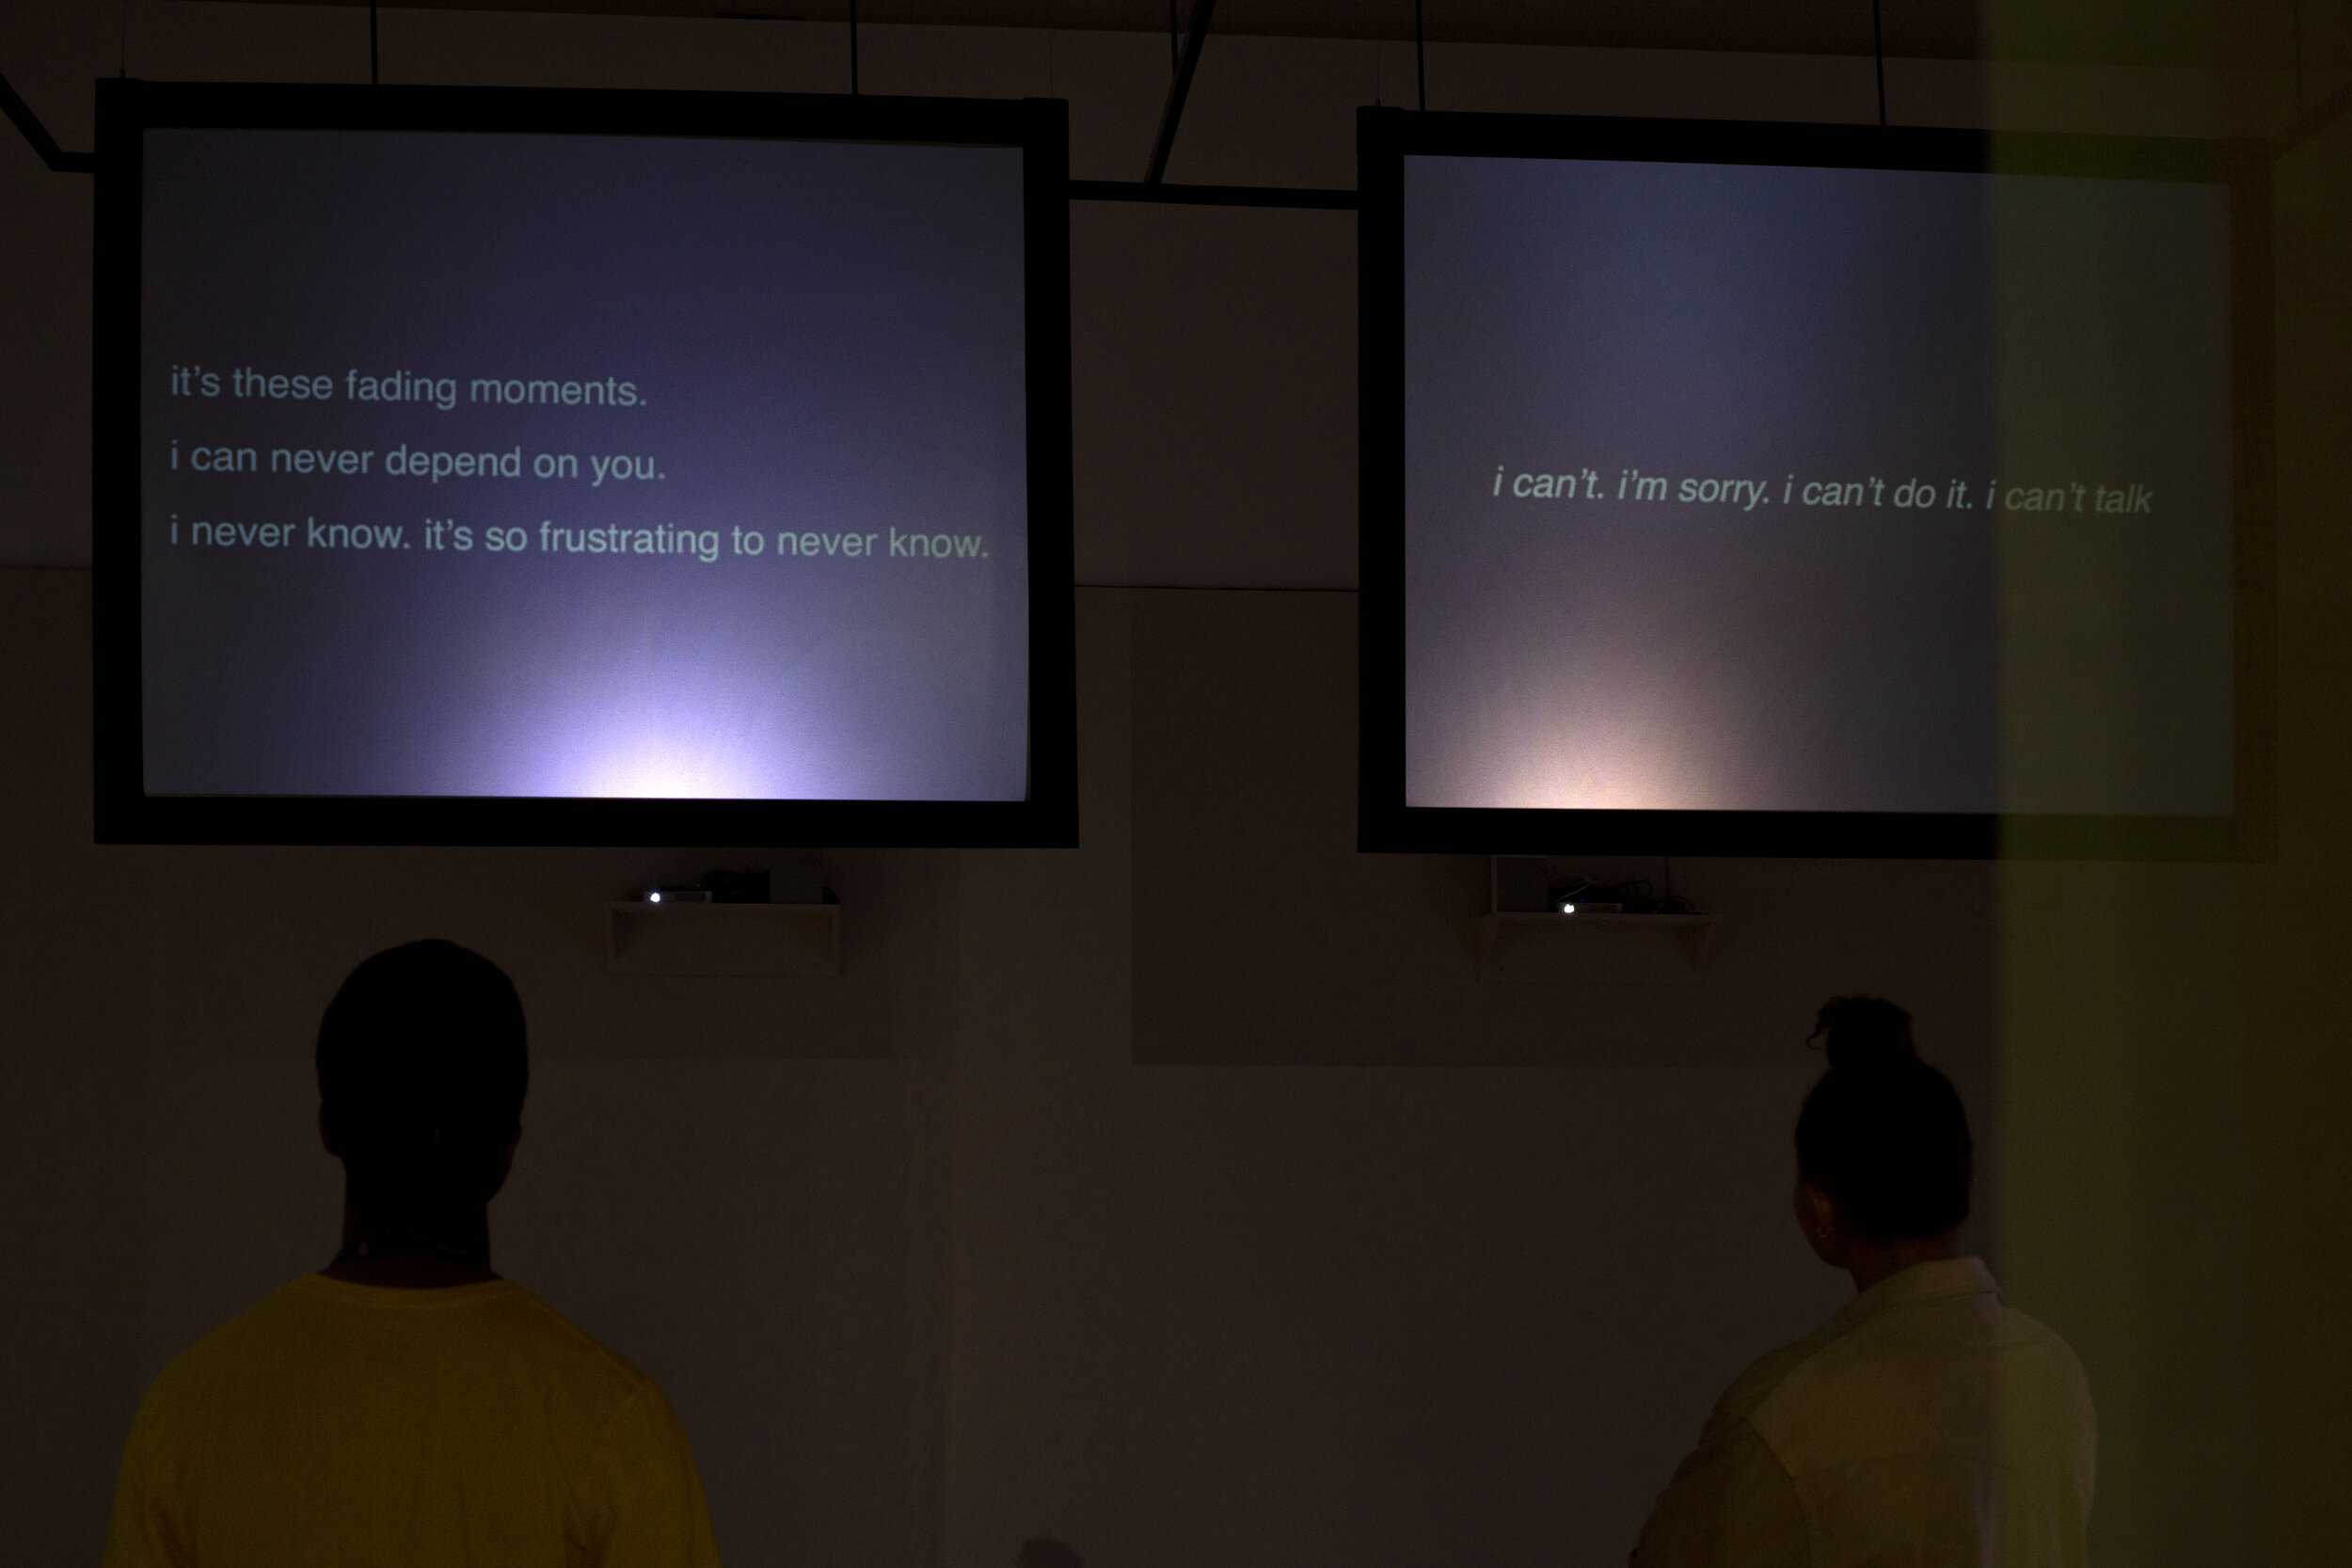 What You Should Know (V ideo installation). 2-channel video projection and stereo sound. 2019